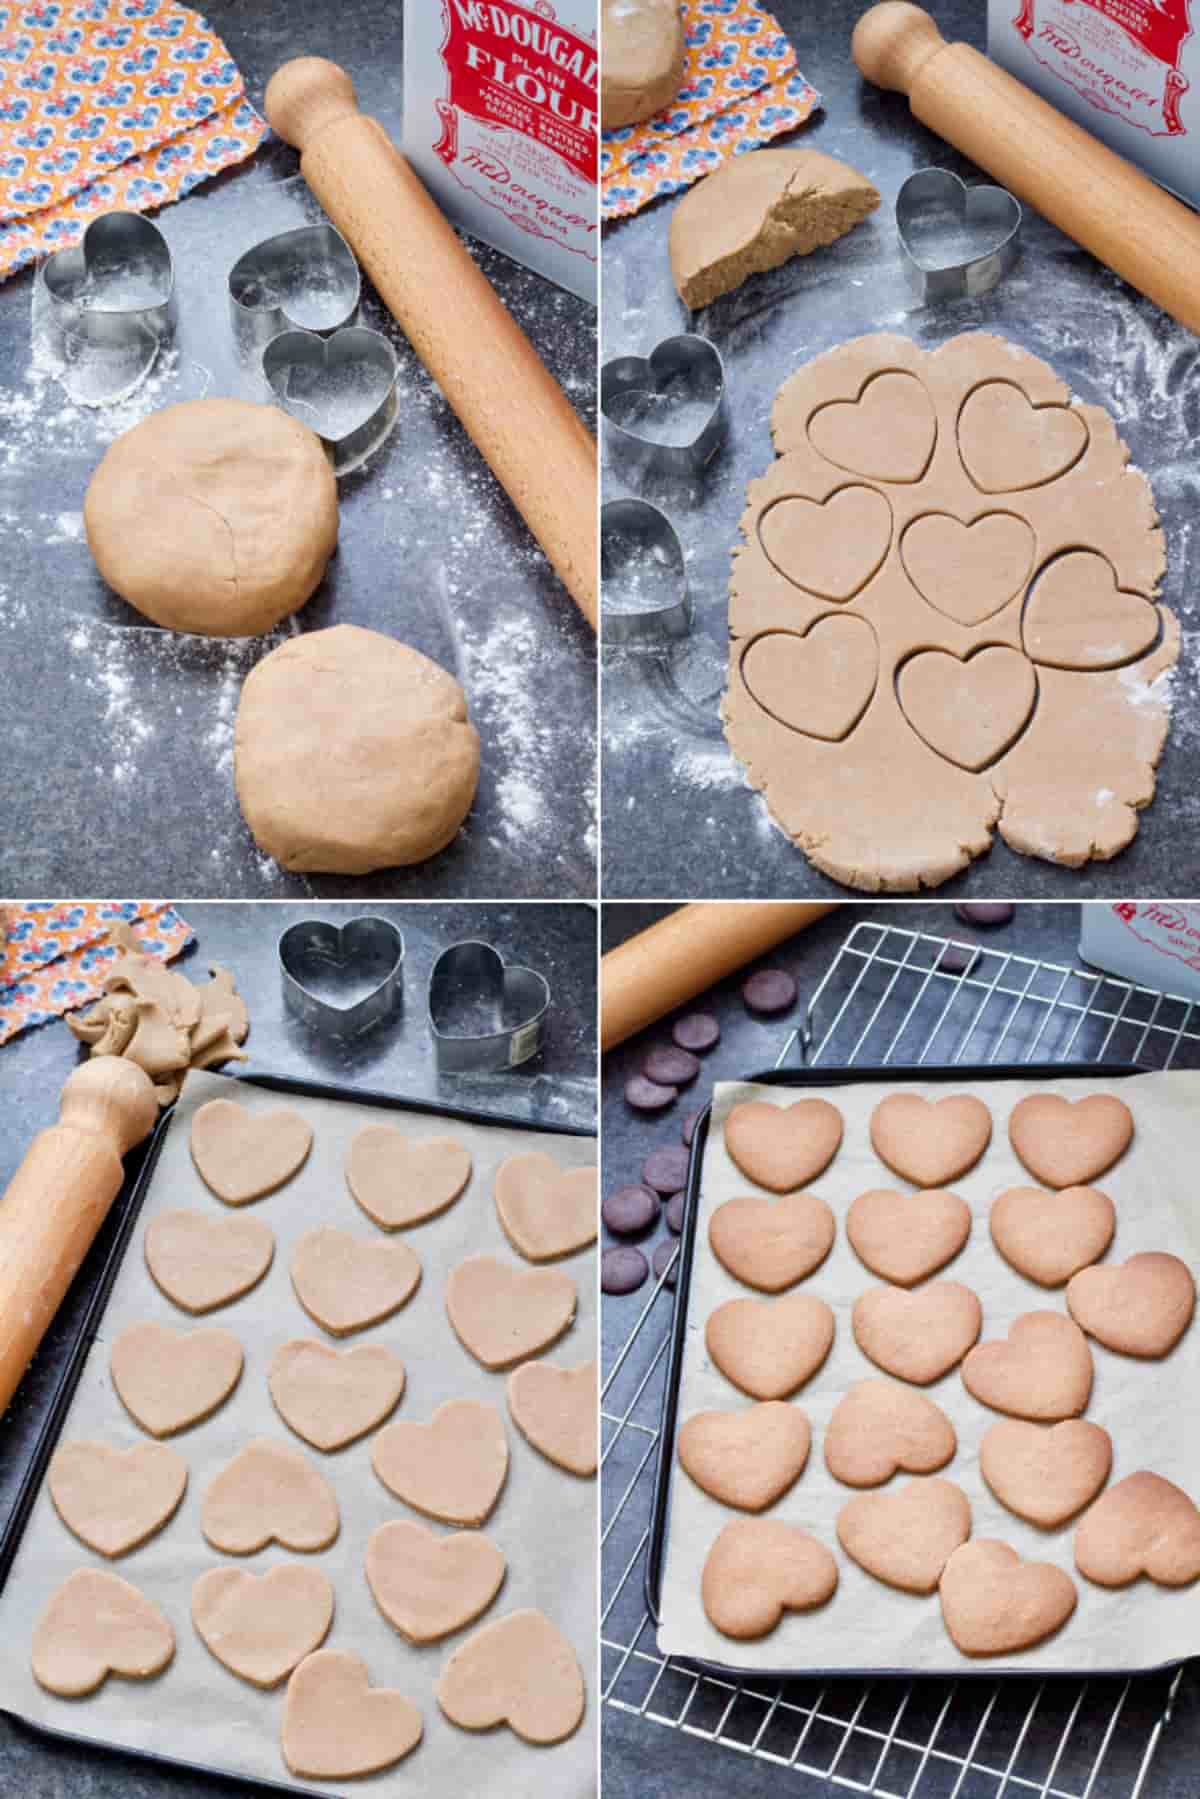 Rolling out cookie dough and cutting out heart shapes.